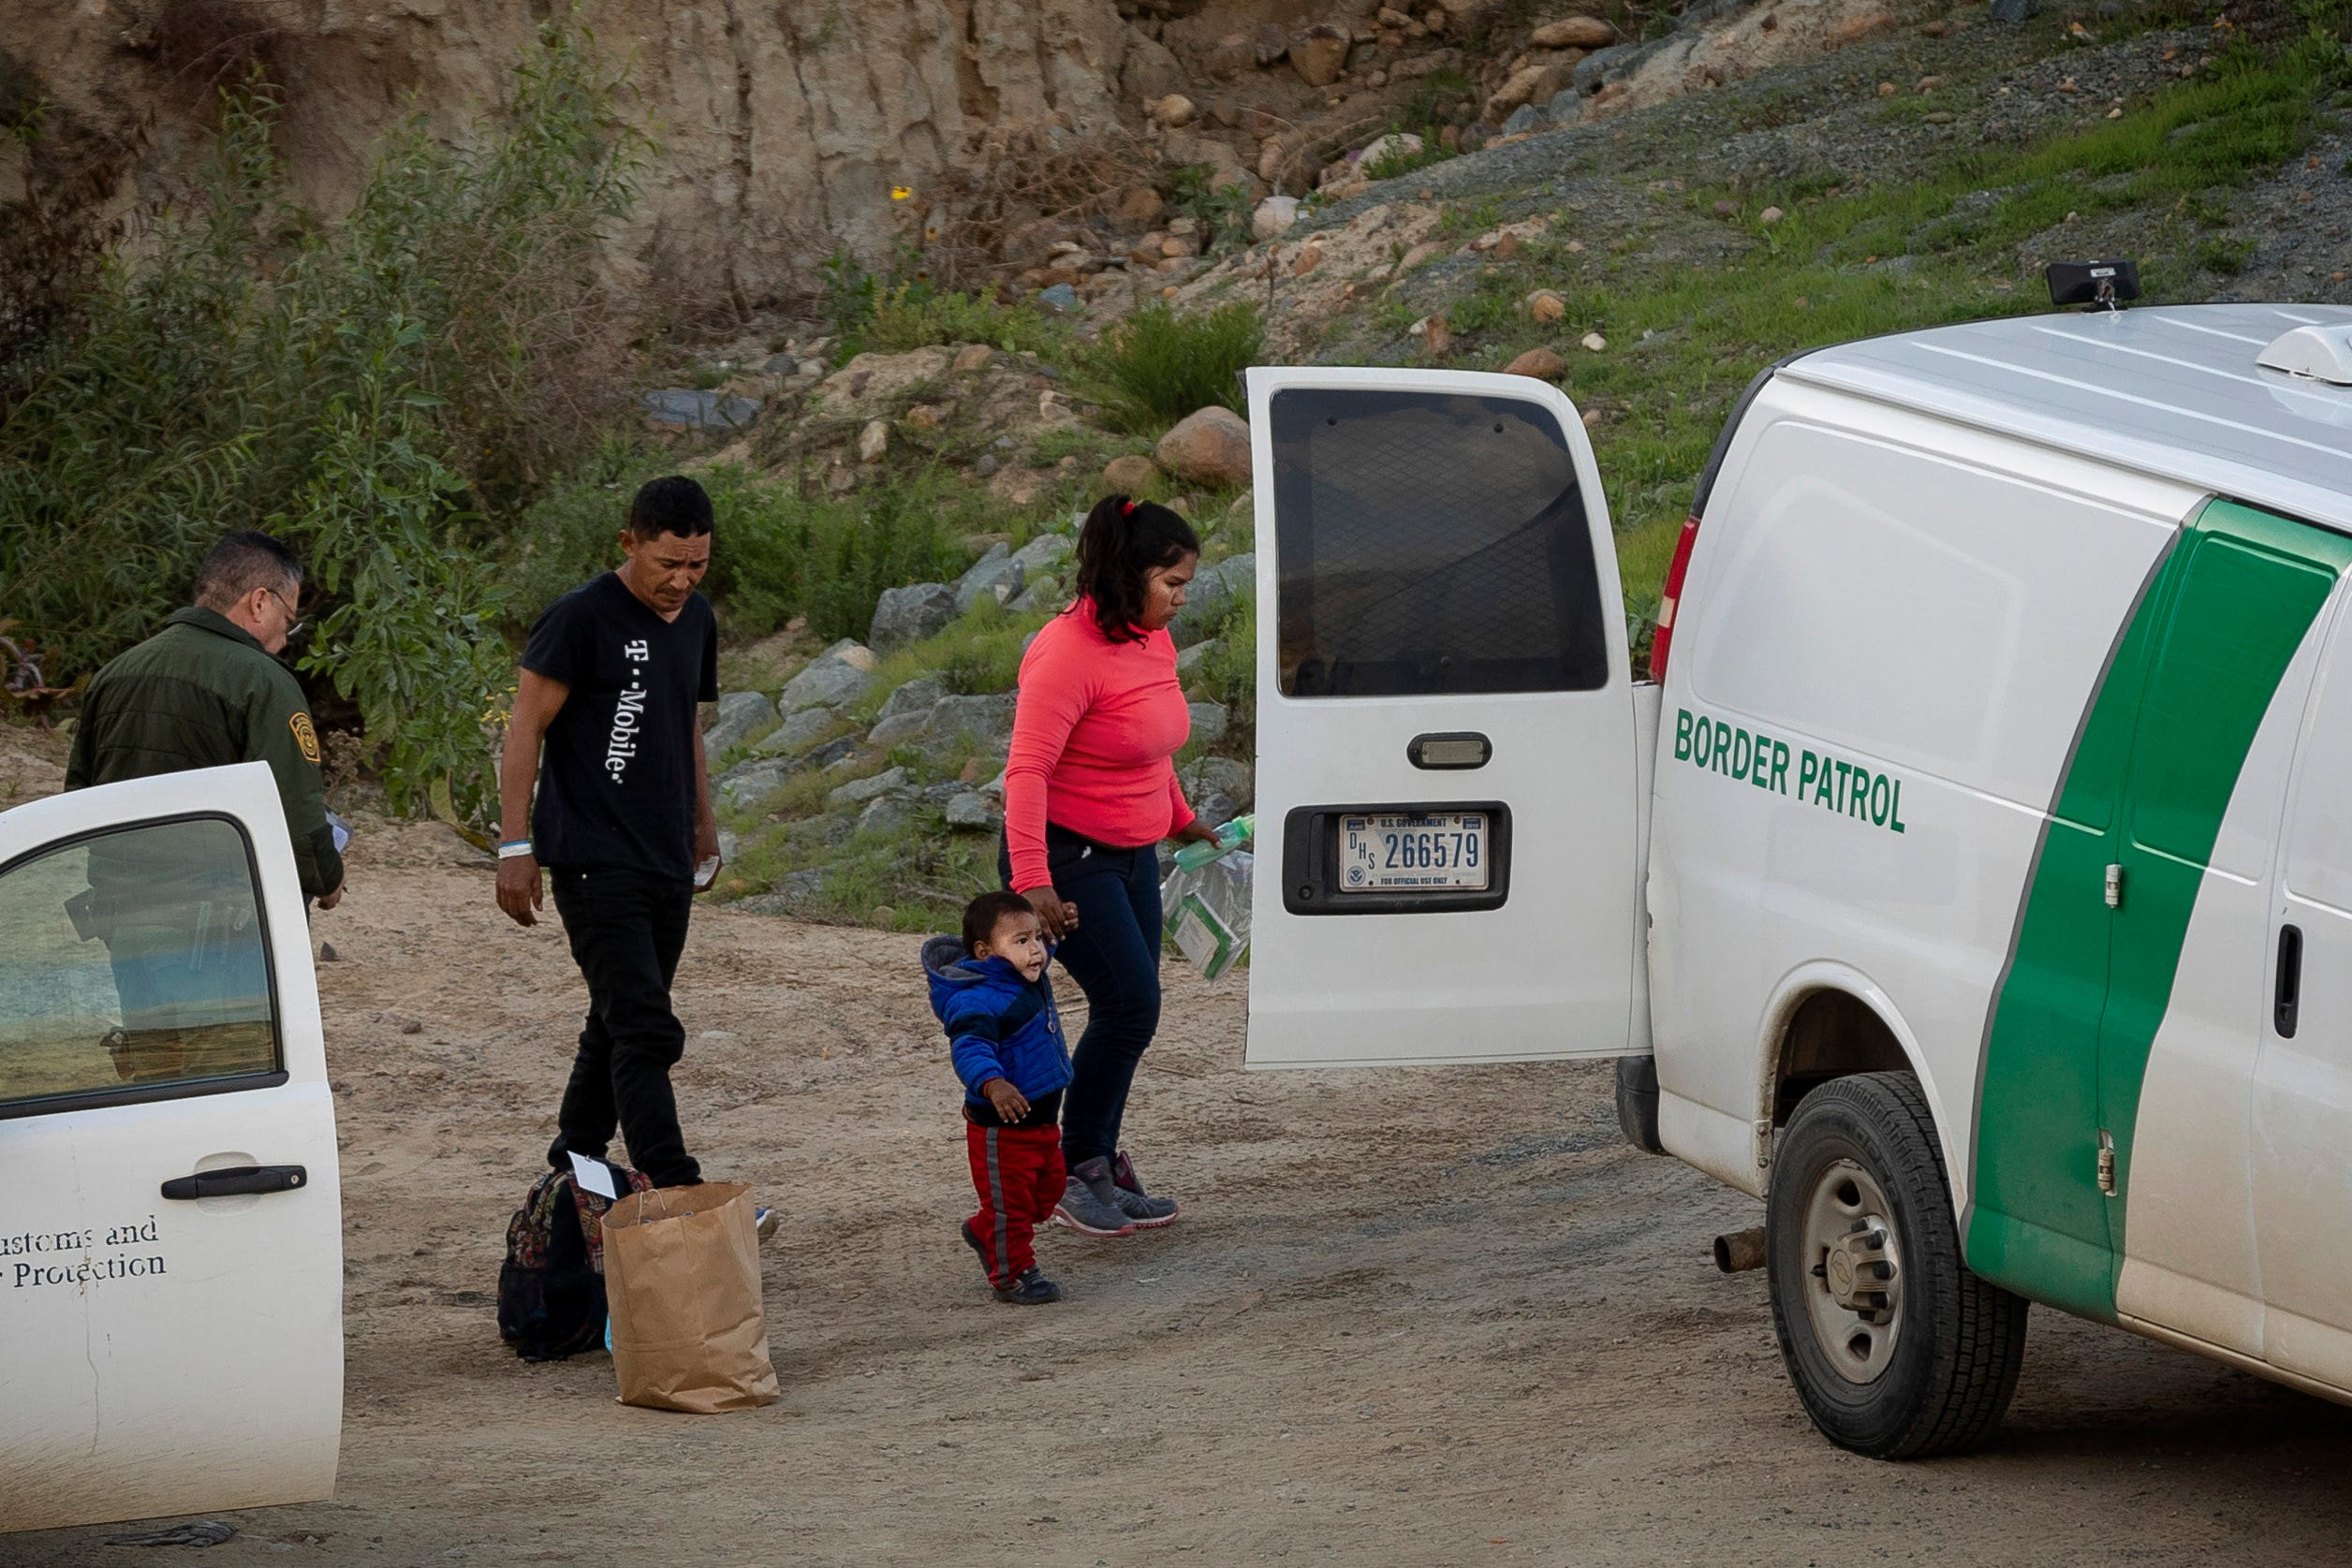 A family of asylum-seekers are taken into custody by U.S. Border Patrol agents after they crossed the U.S. border wall into San Diego, as seen from Tijuana, Mexico, on Thursday, Dec. 27, 2018.